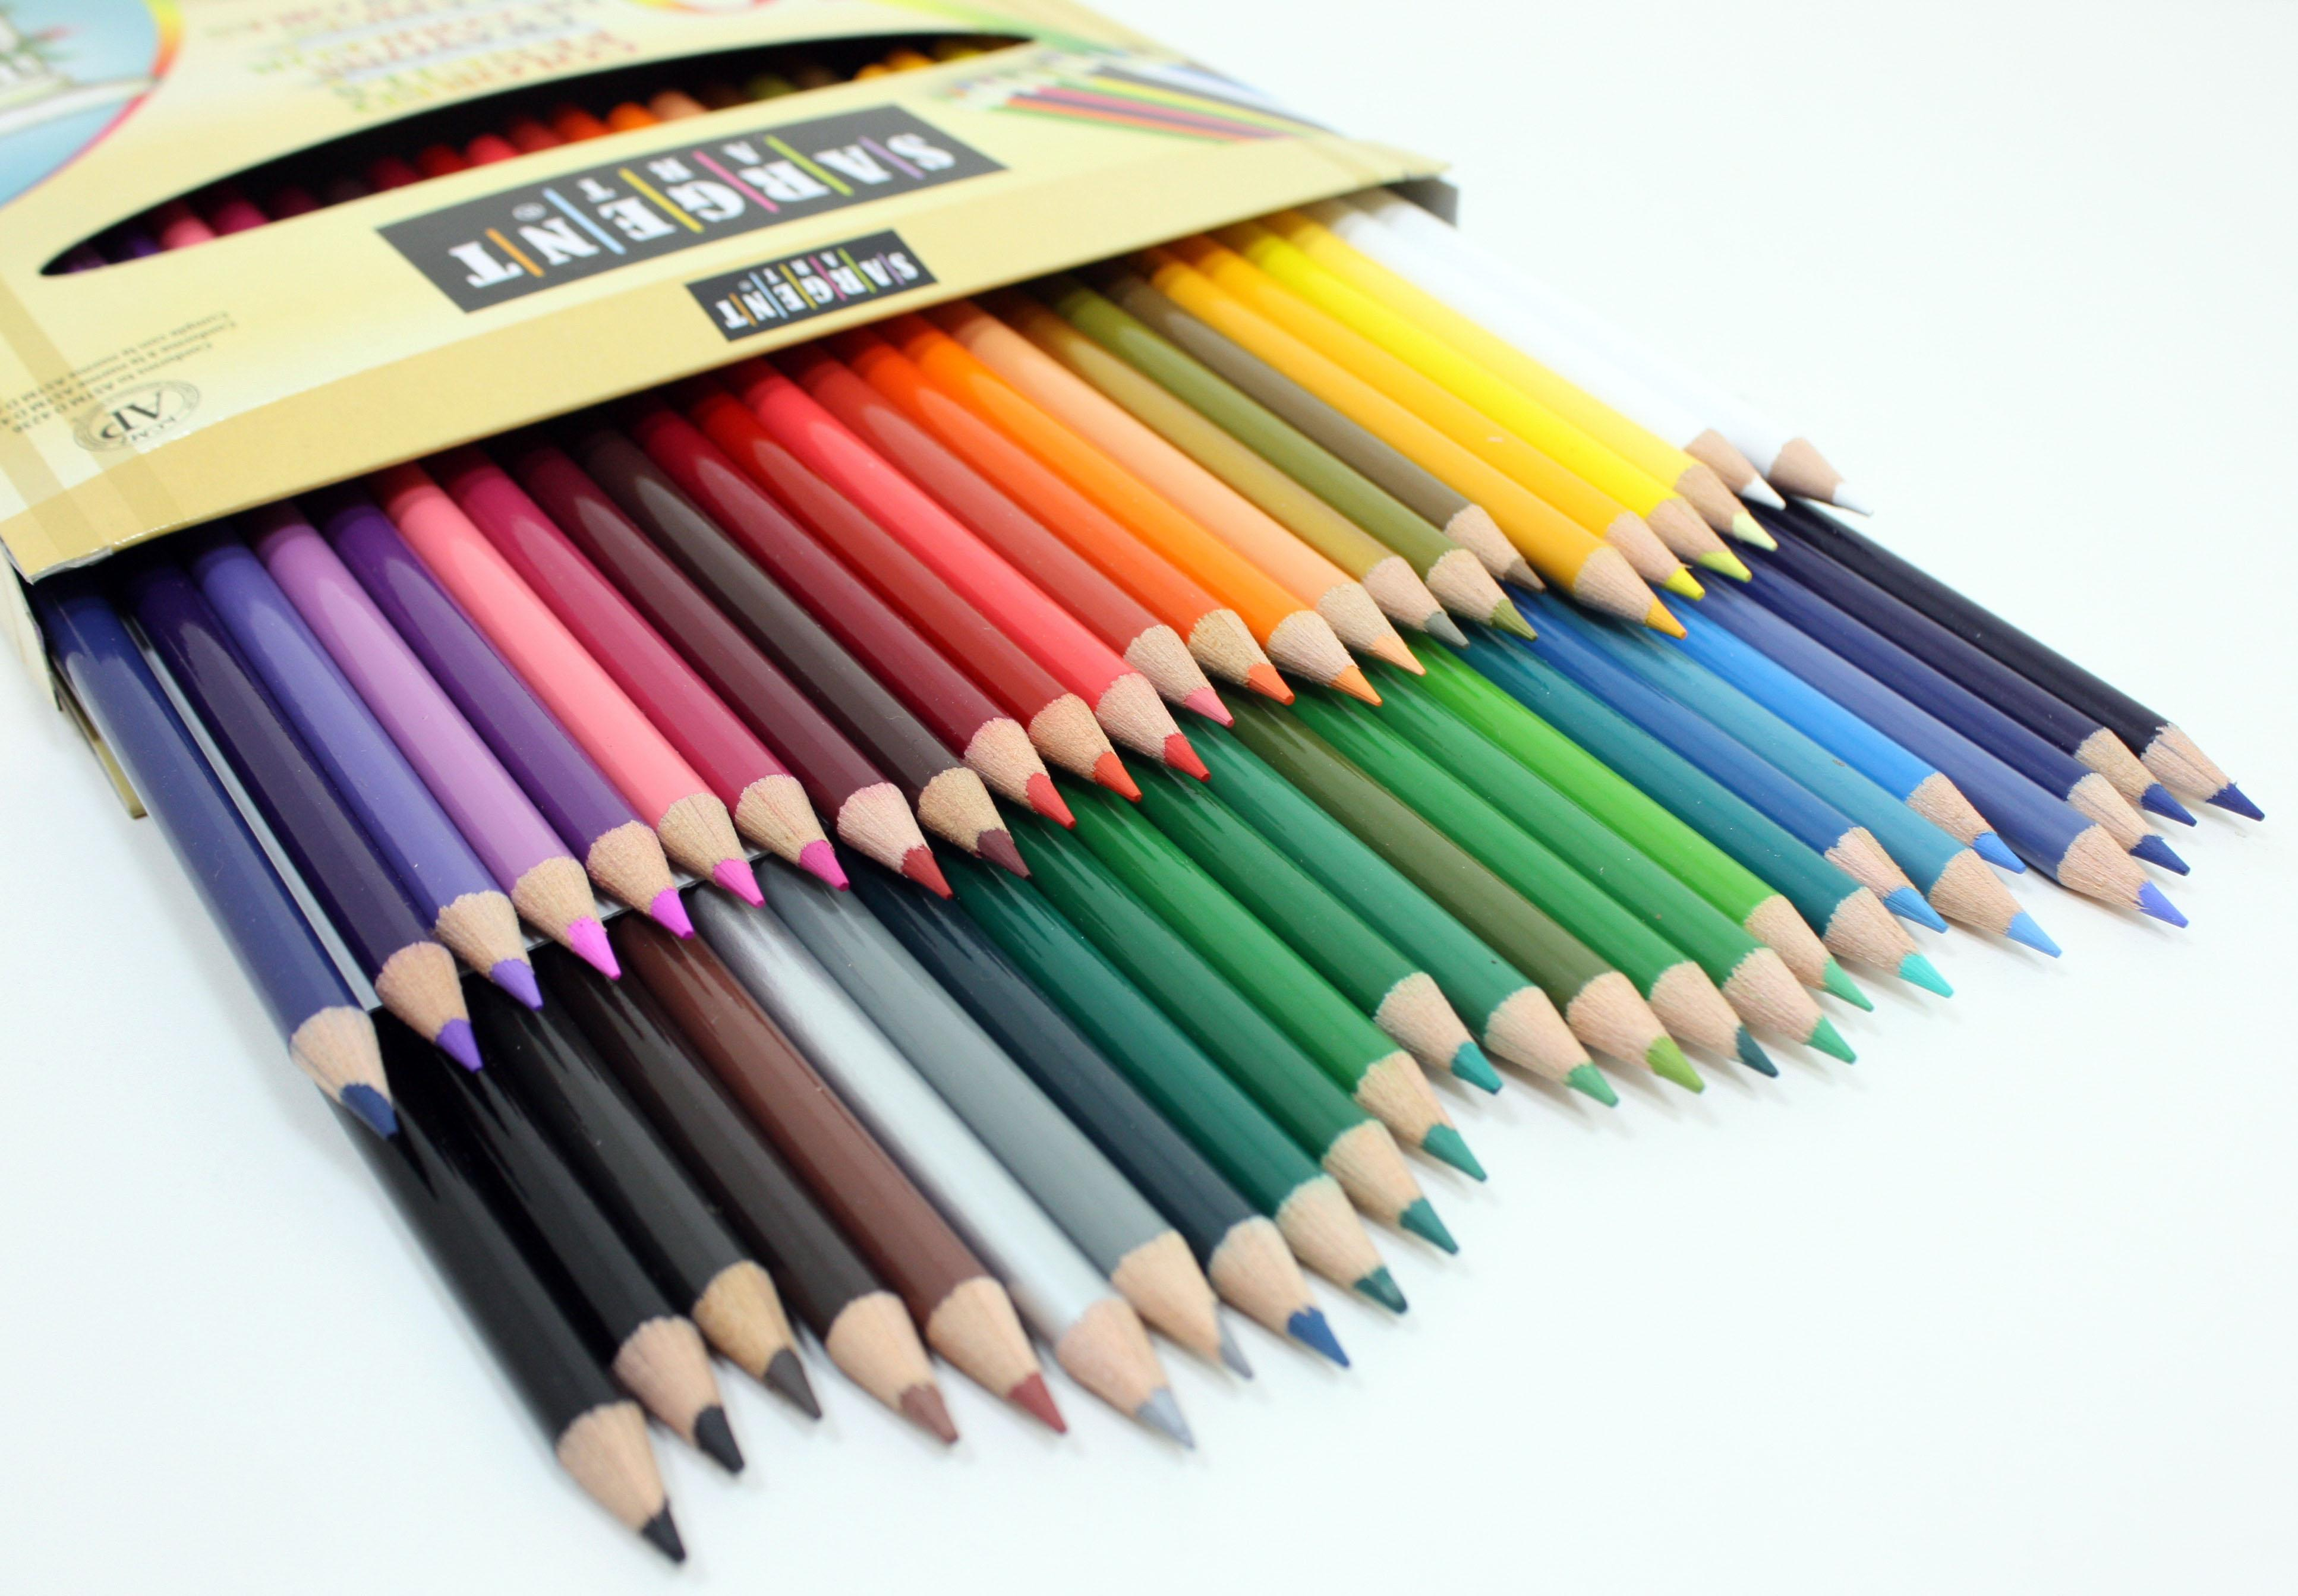 Gallery: Color Pencil Pictures To Color, - Drawings Art Gallery